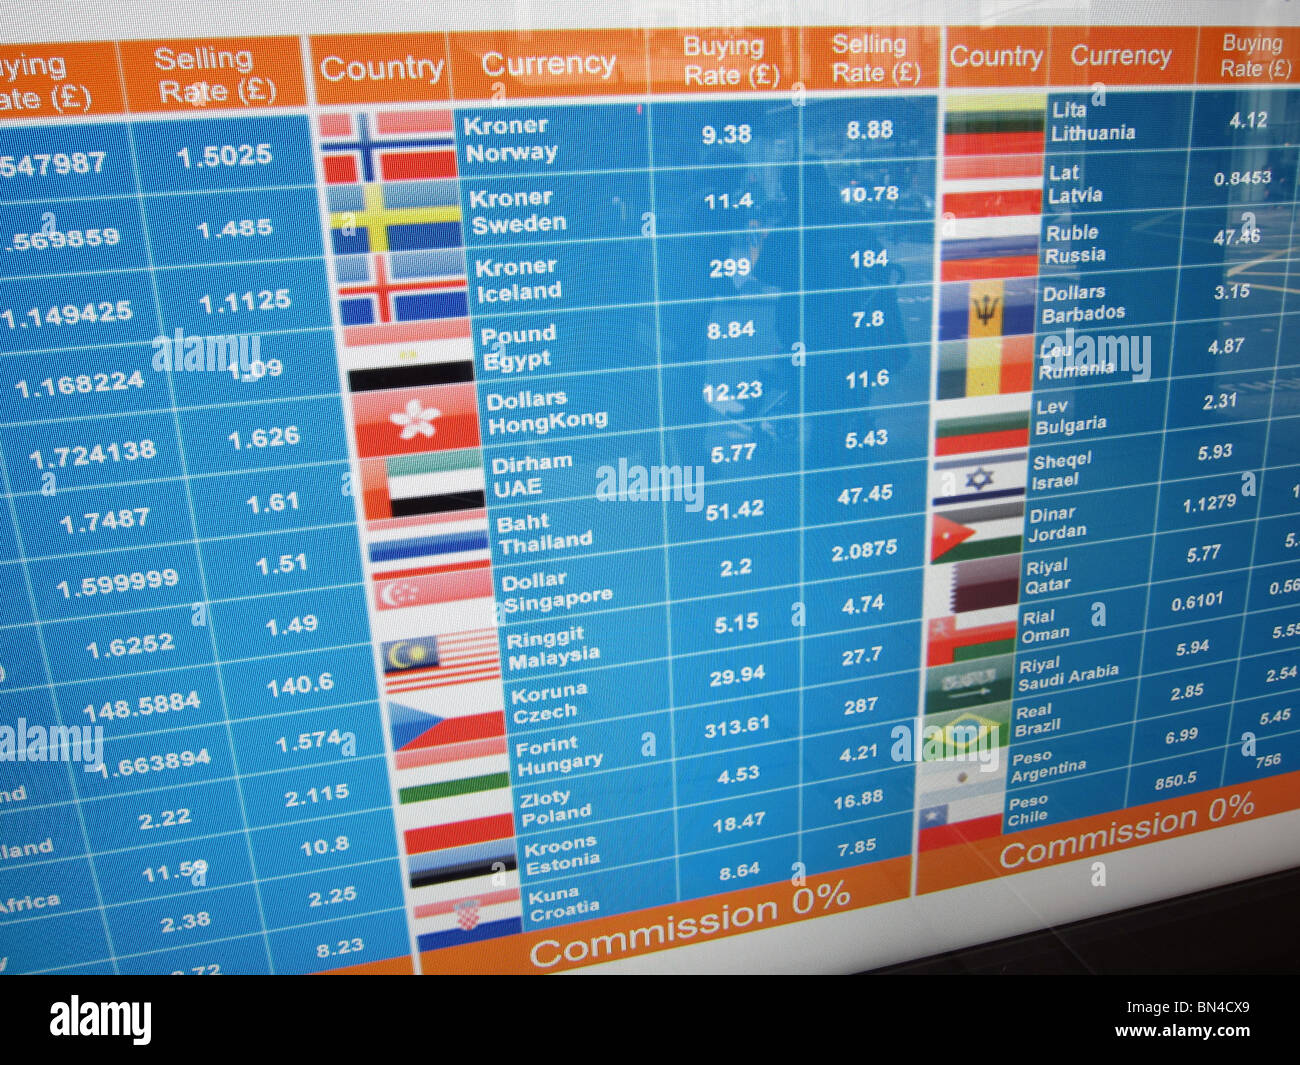 Live forex currency rates